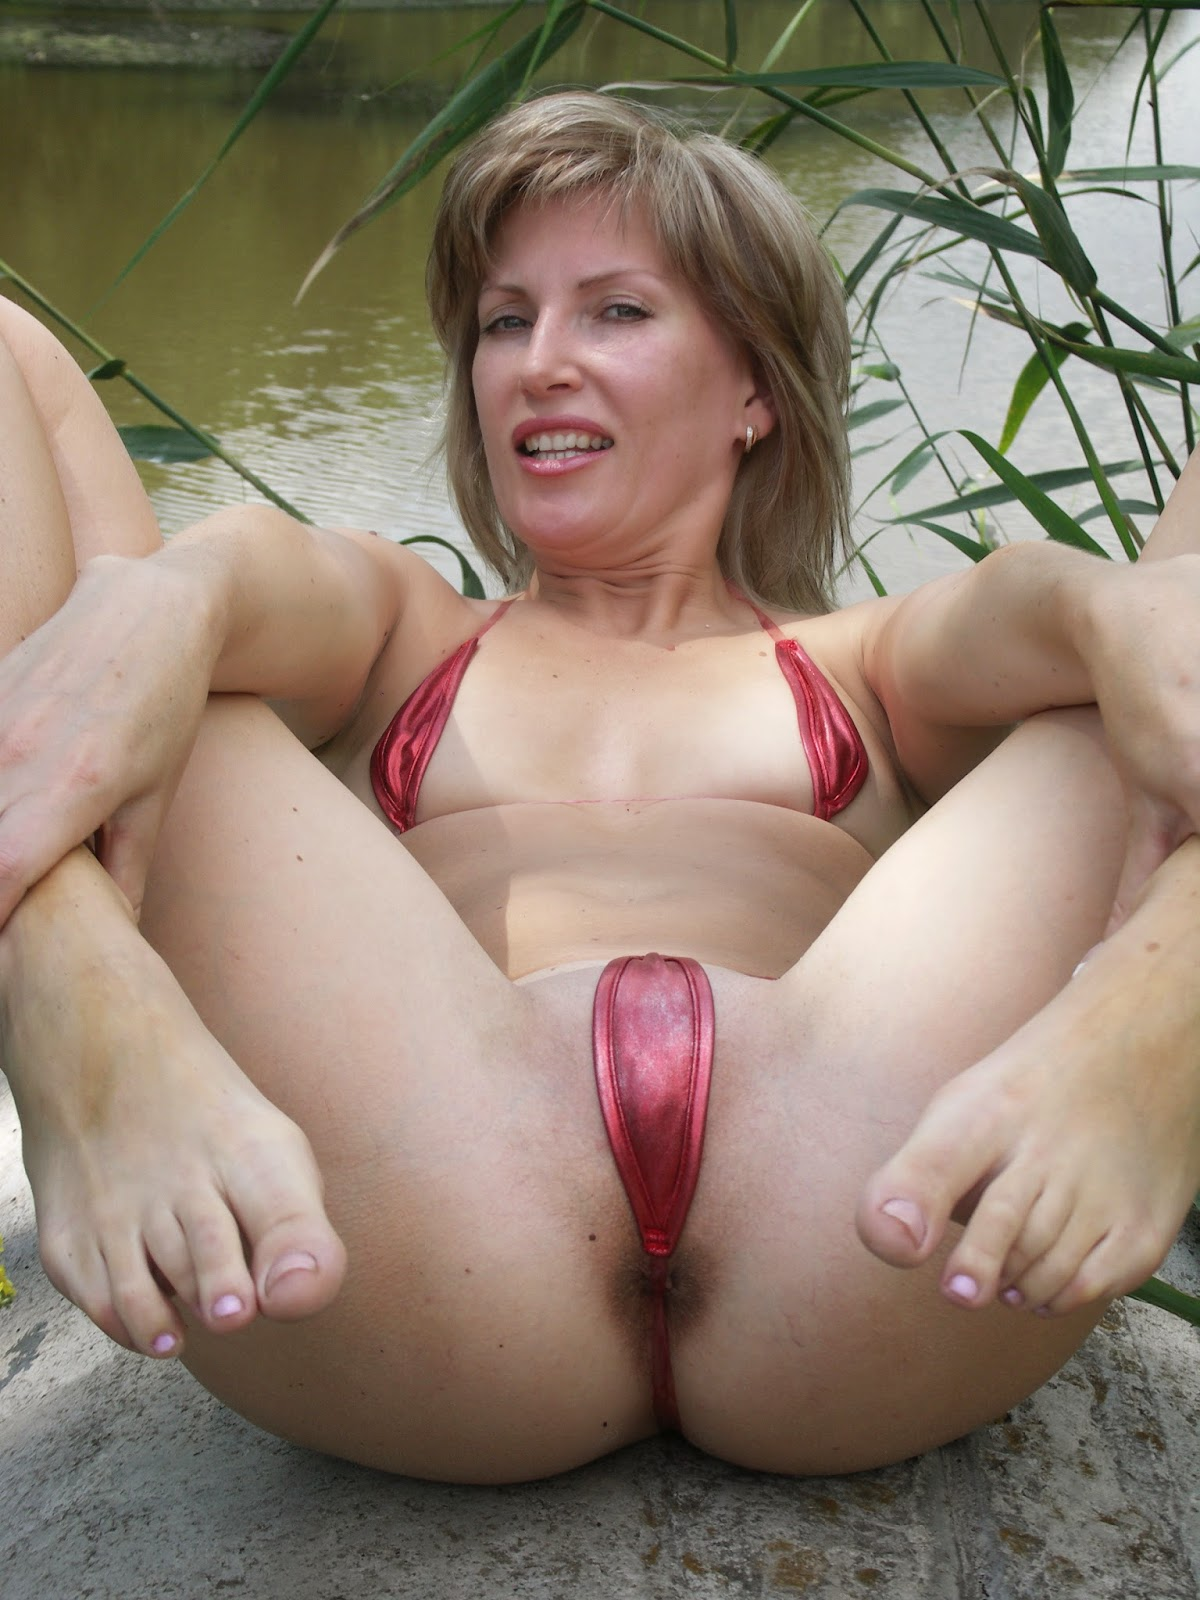 About very mature milf body